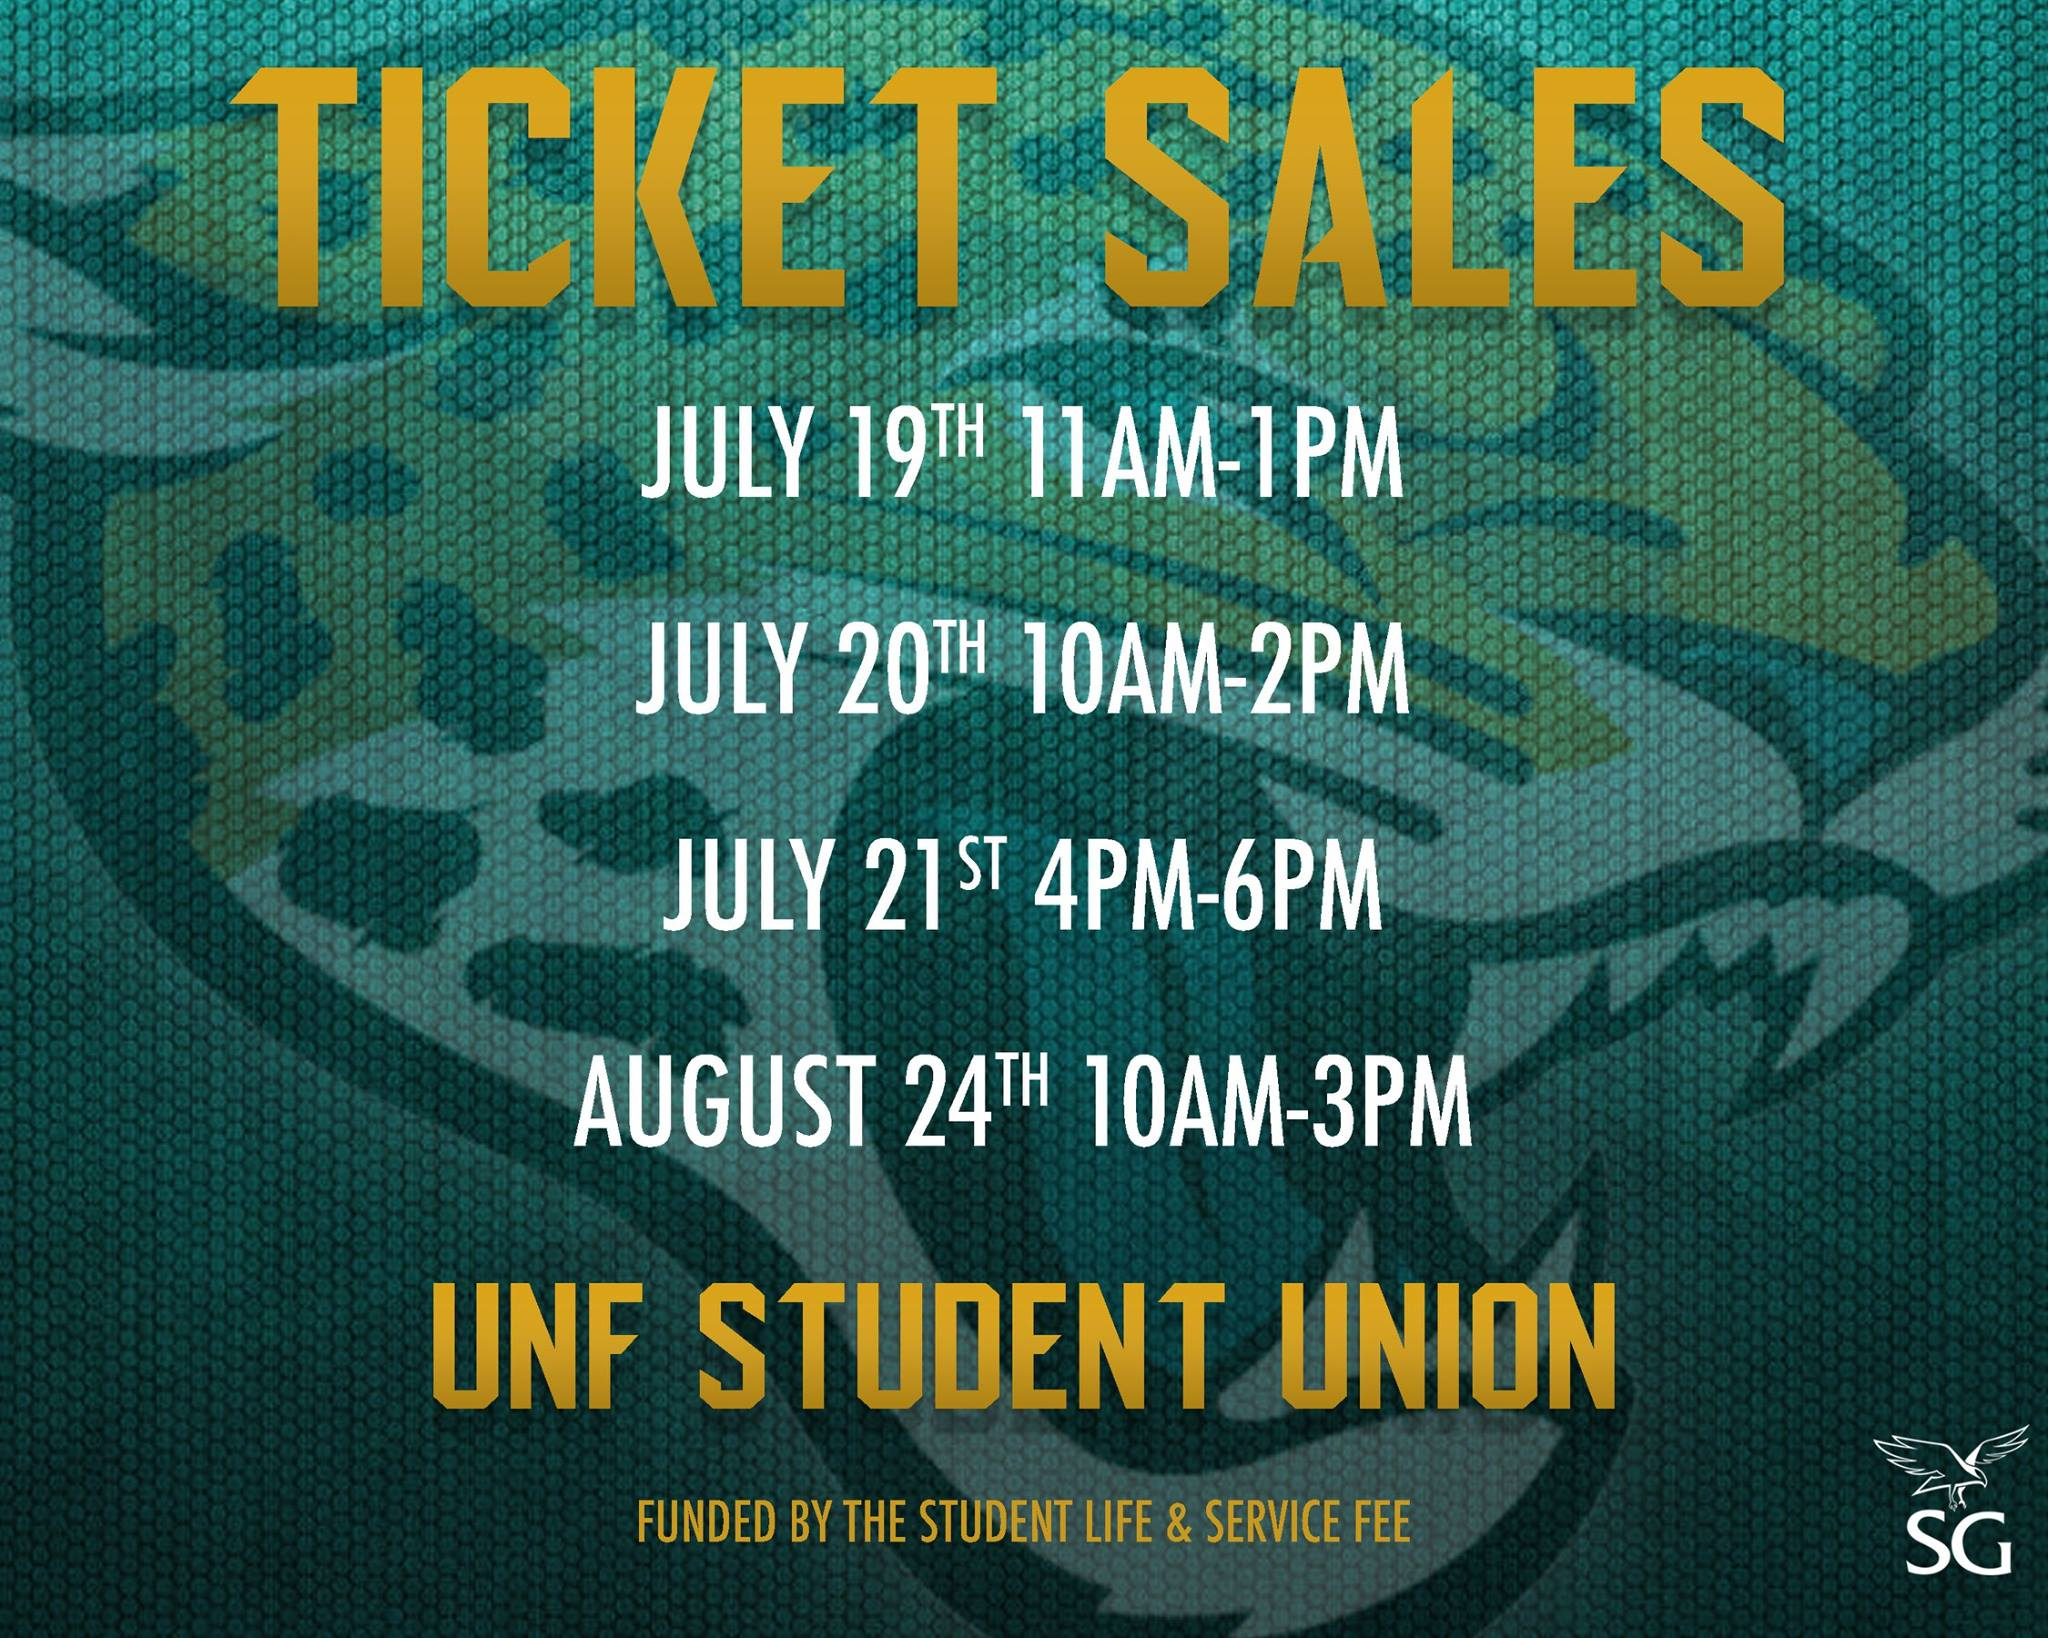 Student ticket sale dates for Jacksonville Jags season passes are out